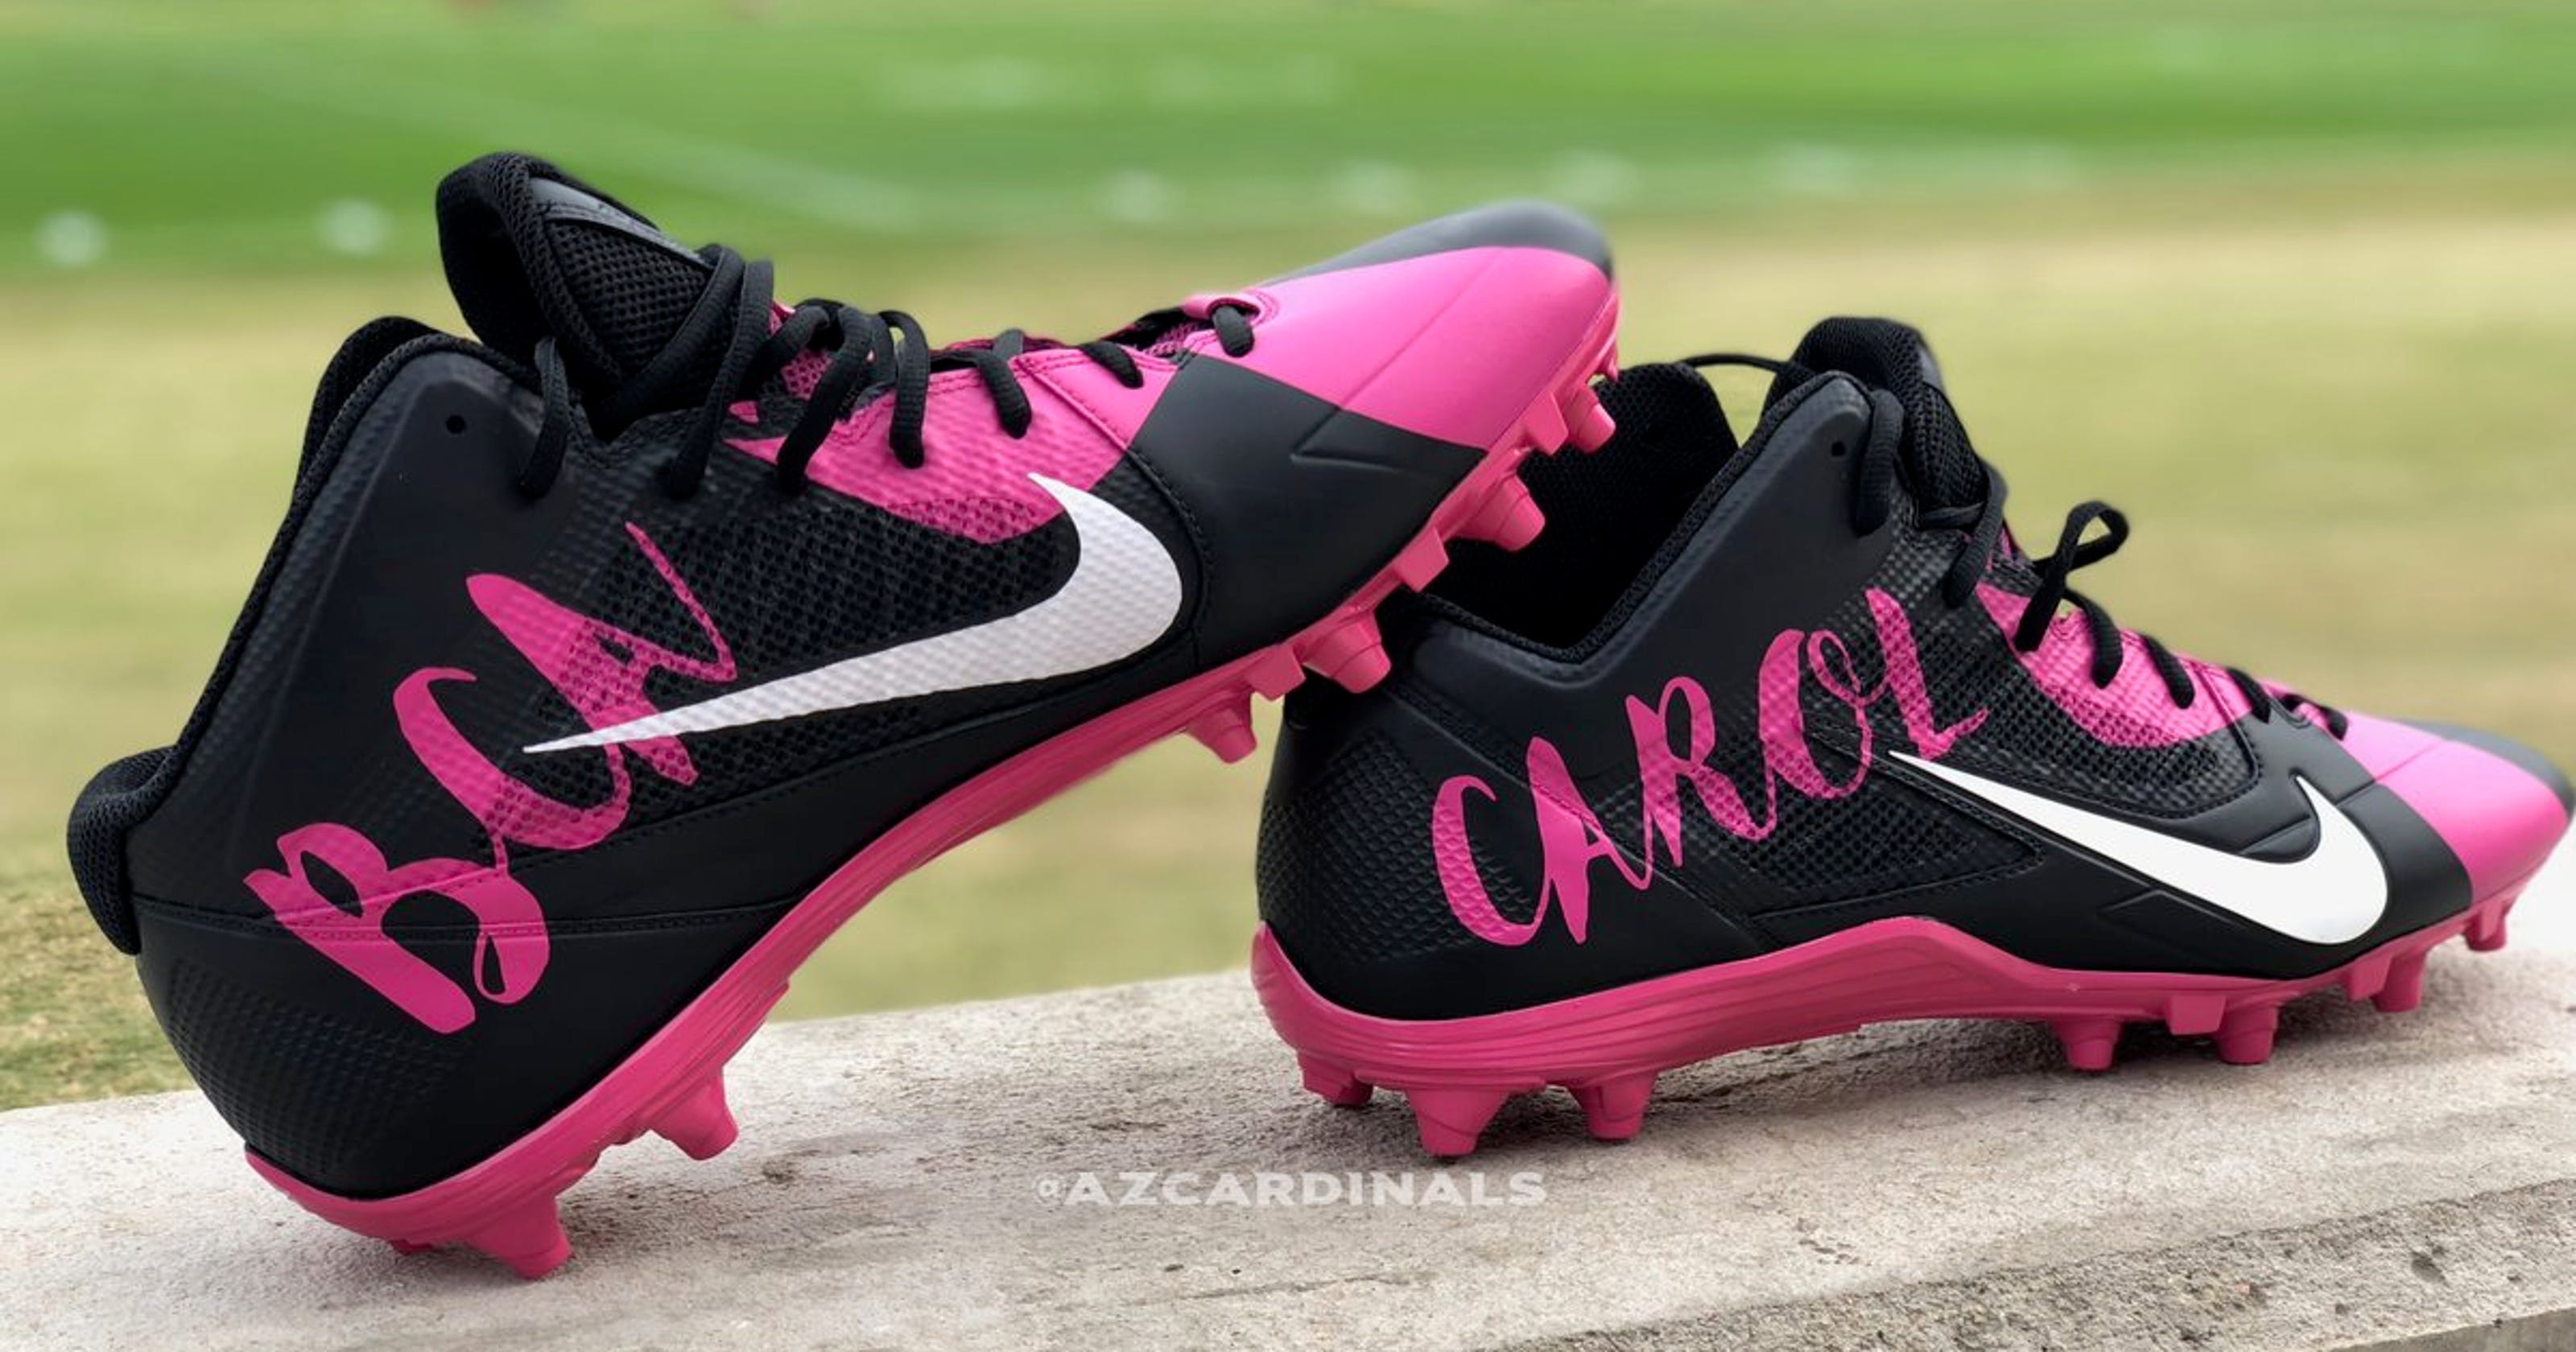 c4ddbb44c472 My Cause My Cleats  NFL players  special cleats for charity in Week 13